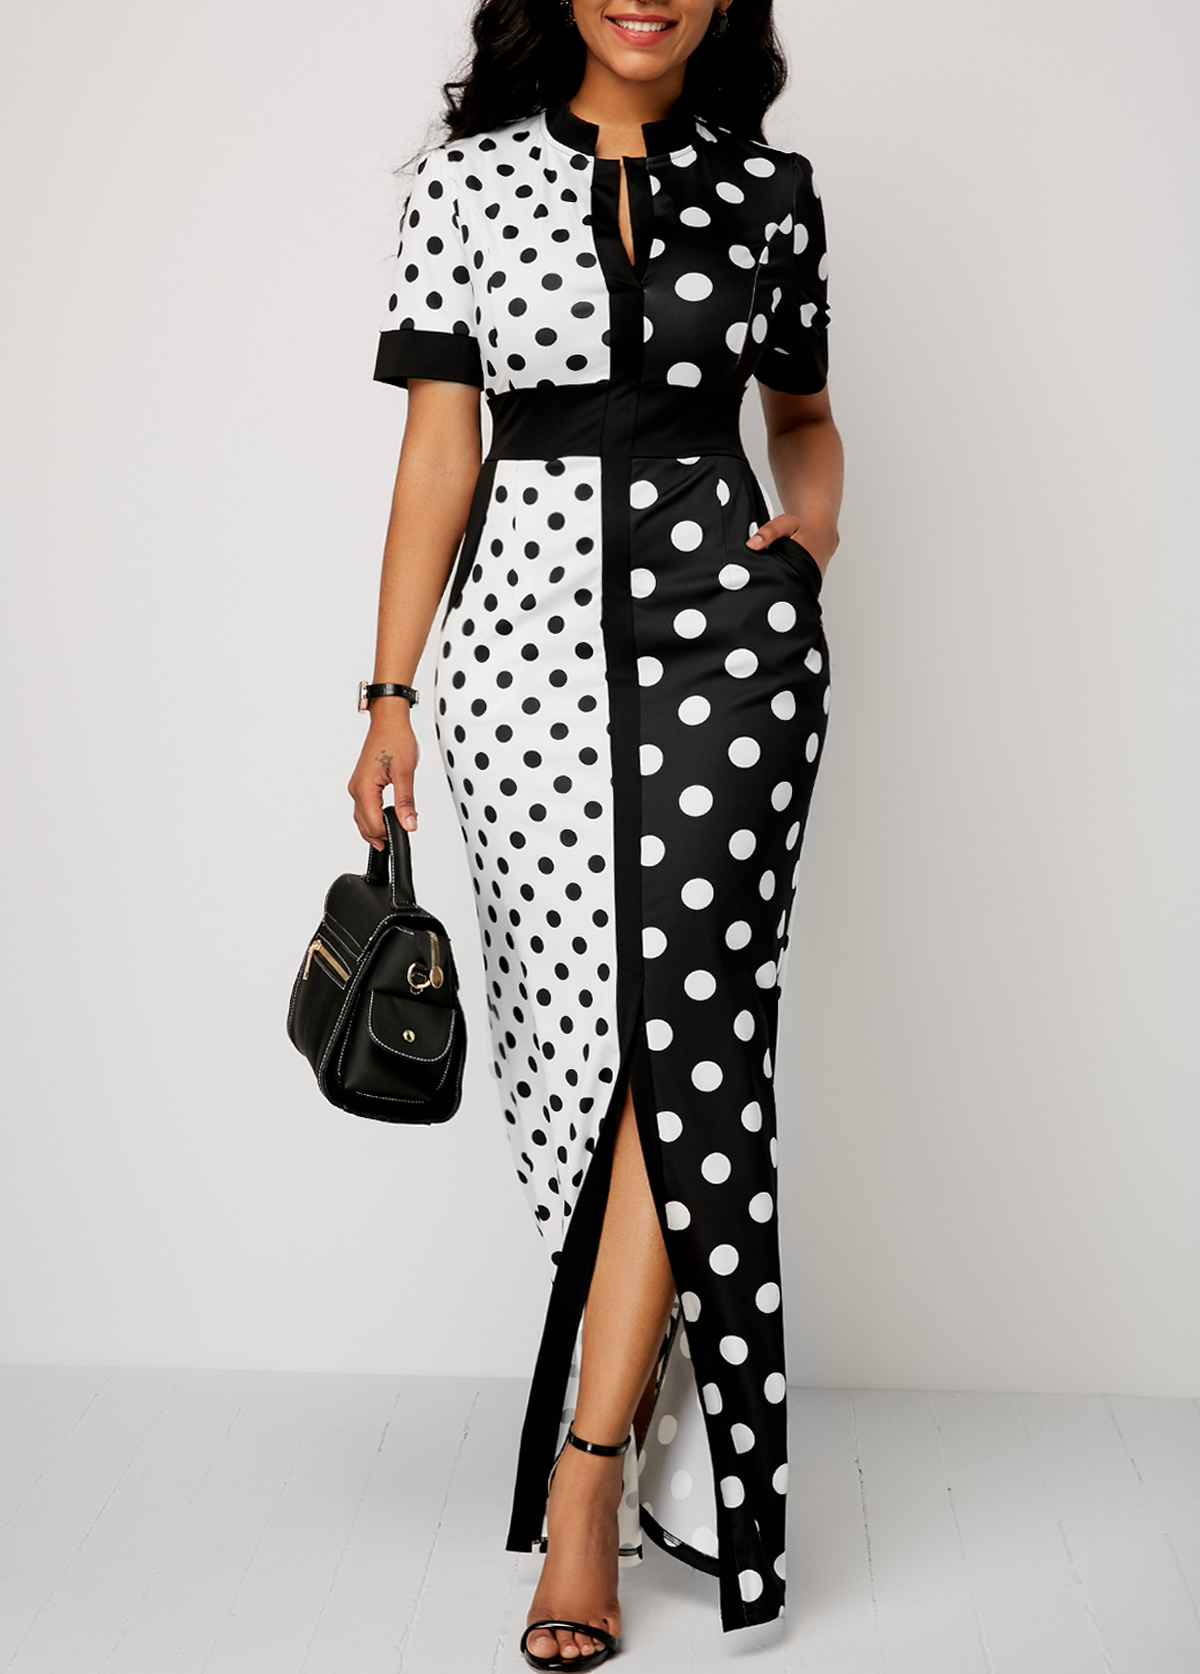 Polka Dot Print Front Slit High Waist Dress